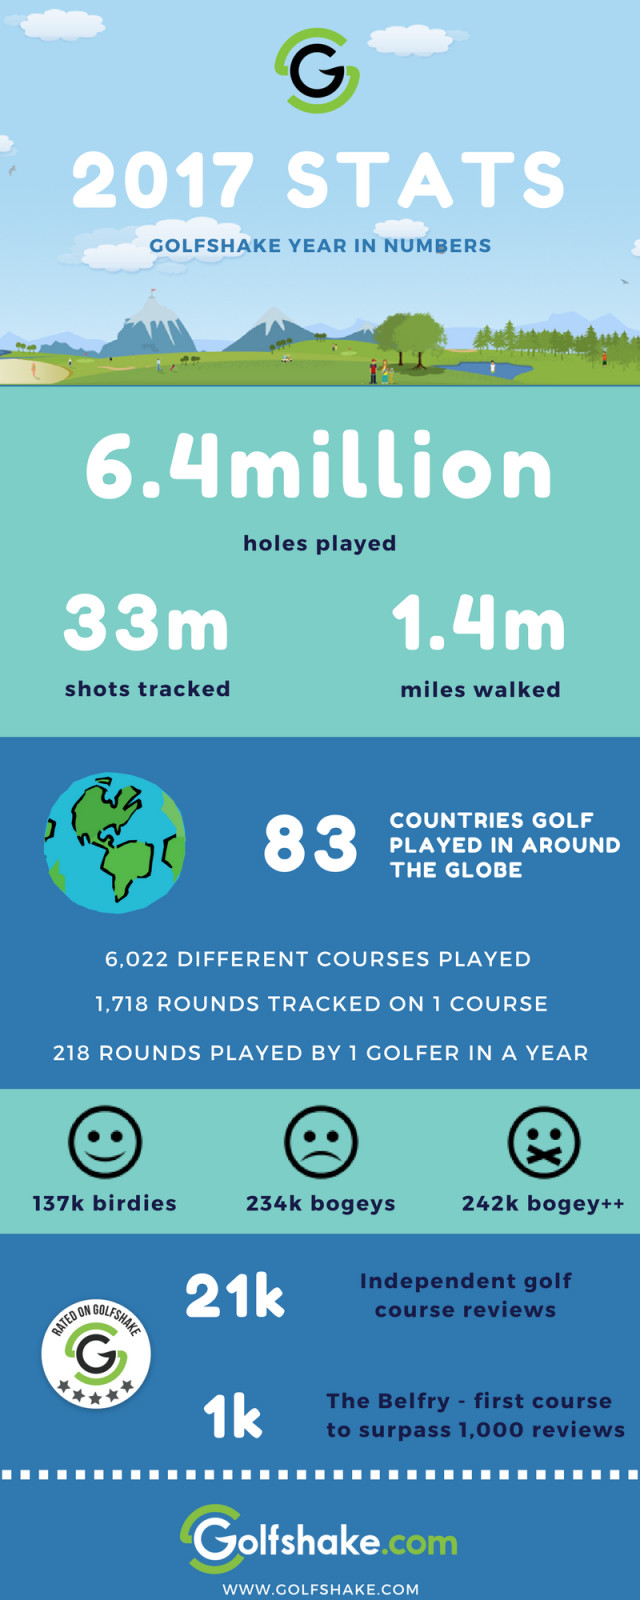 Golfshake in numbers